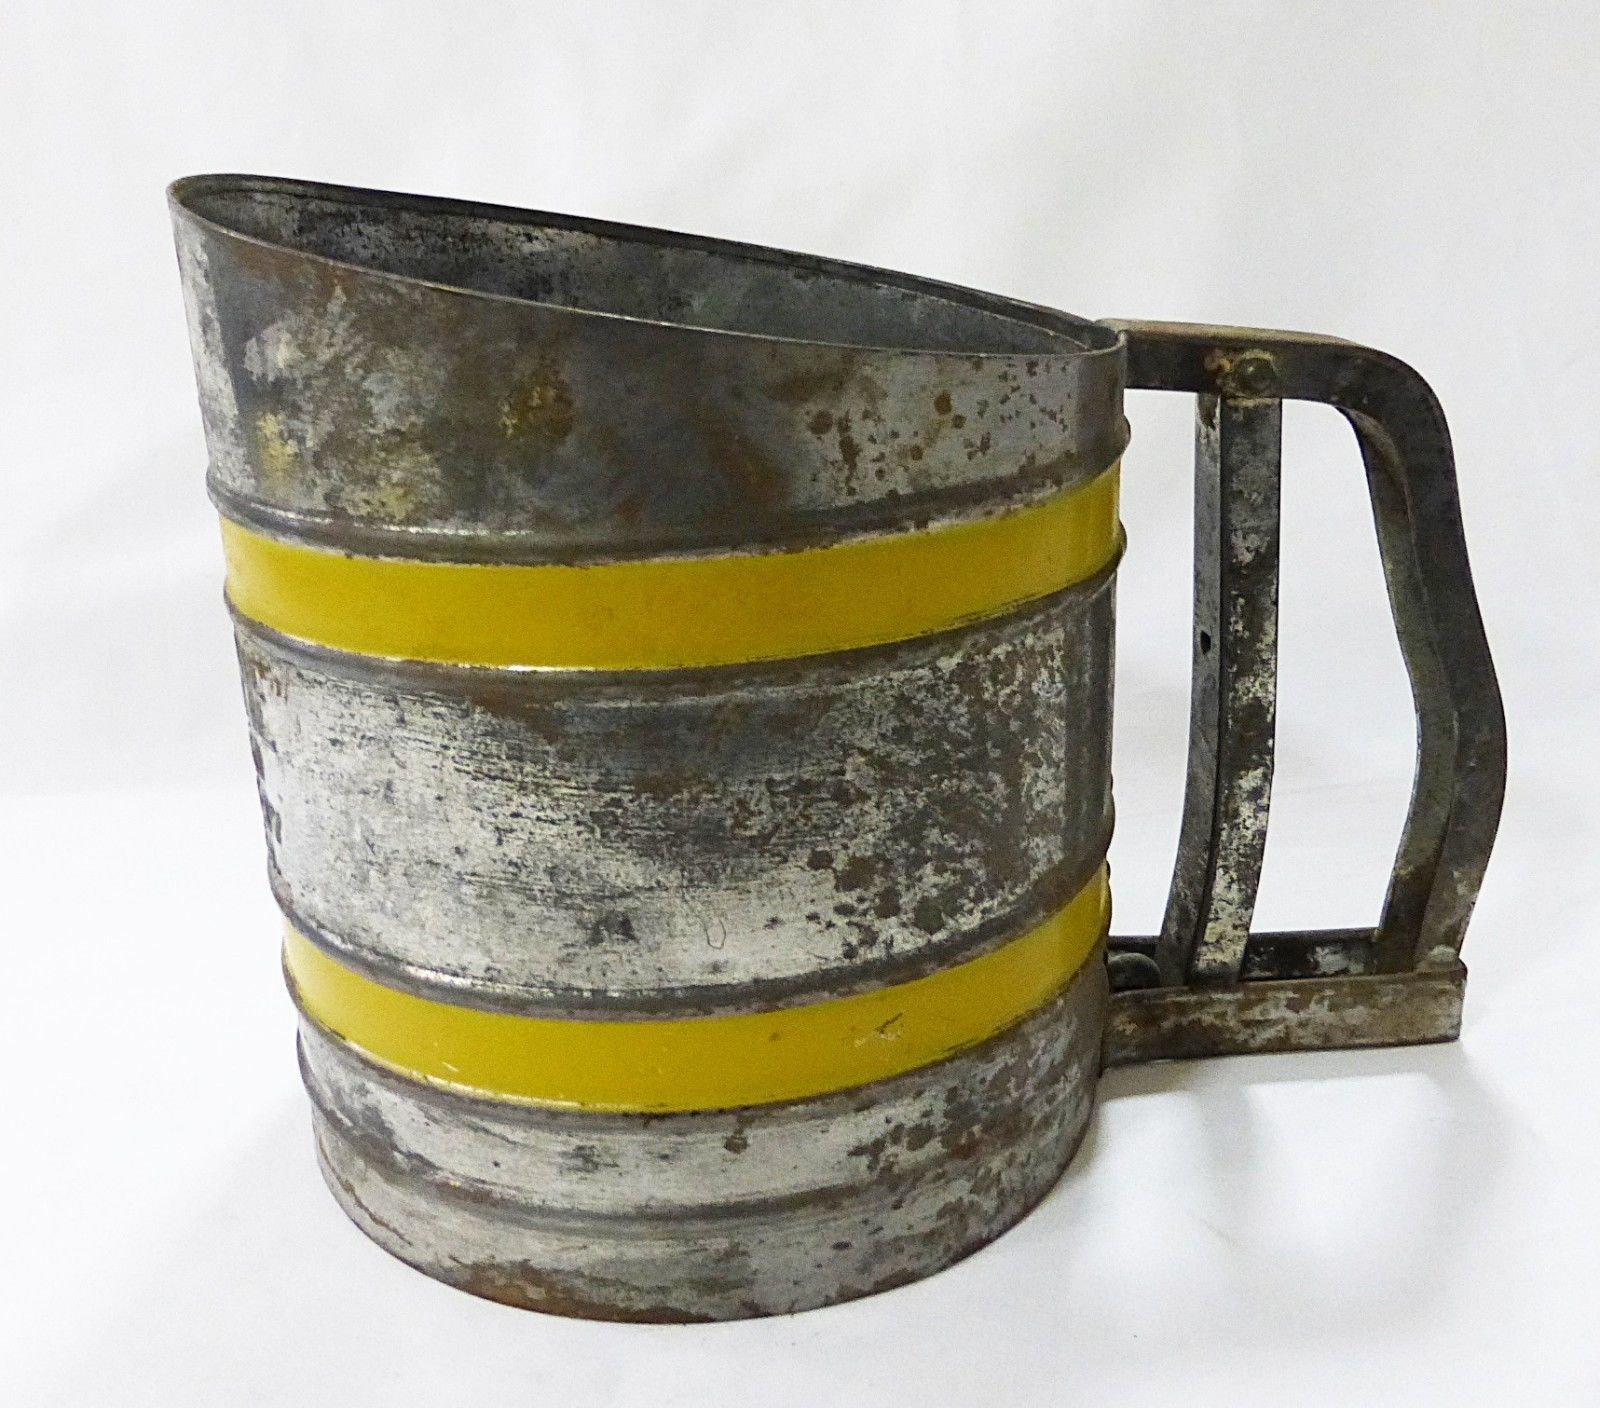 vintage flour sifter chine double screen with yellow bands working